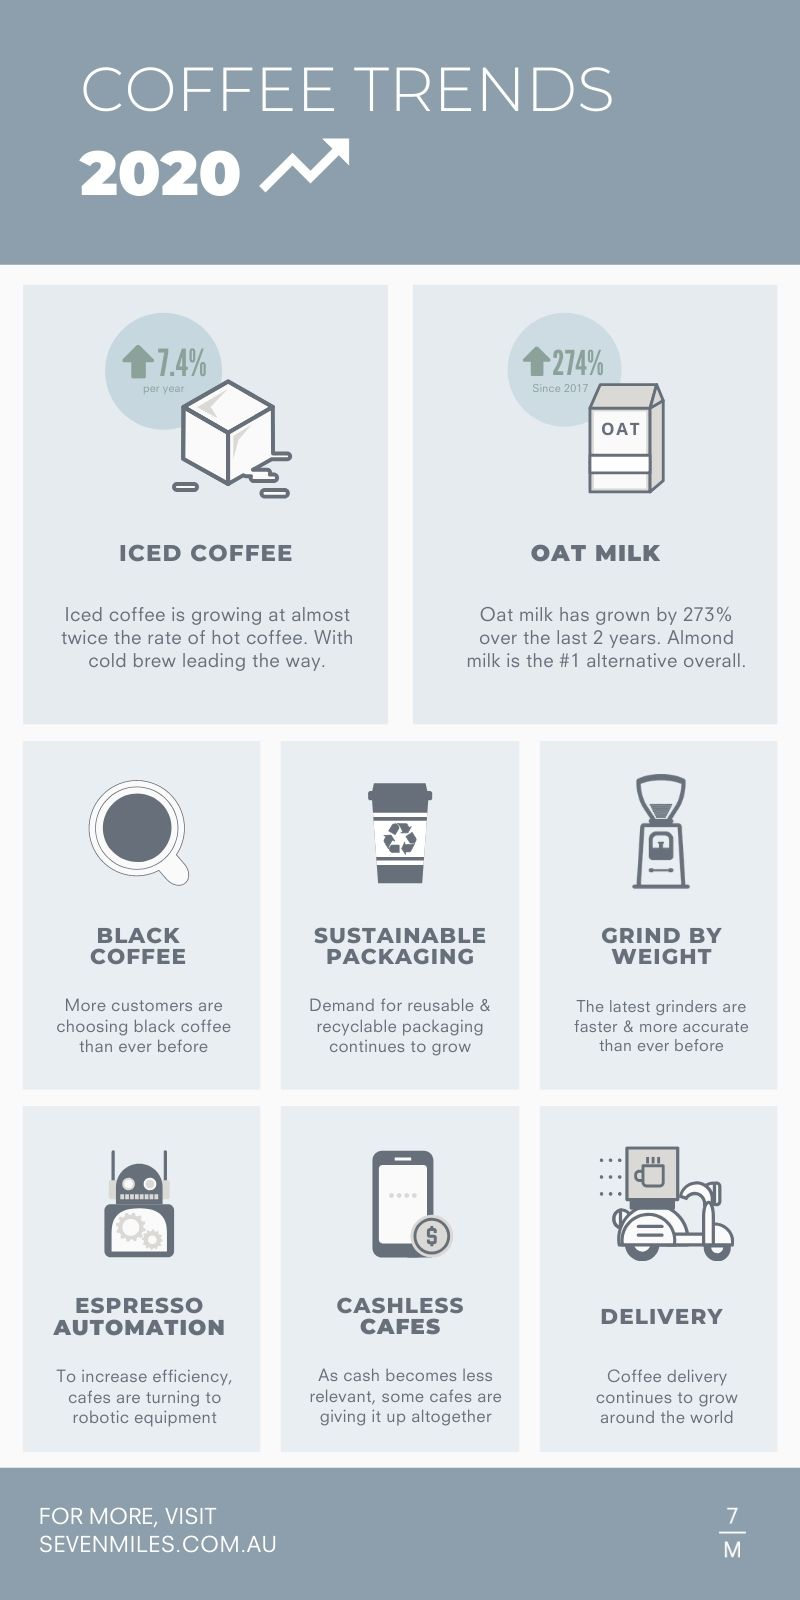 Coffee trends 2020 infographic